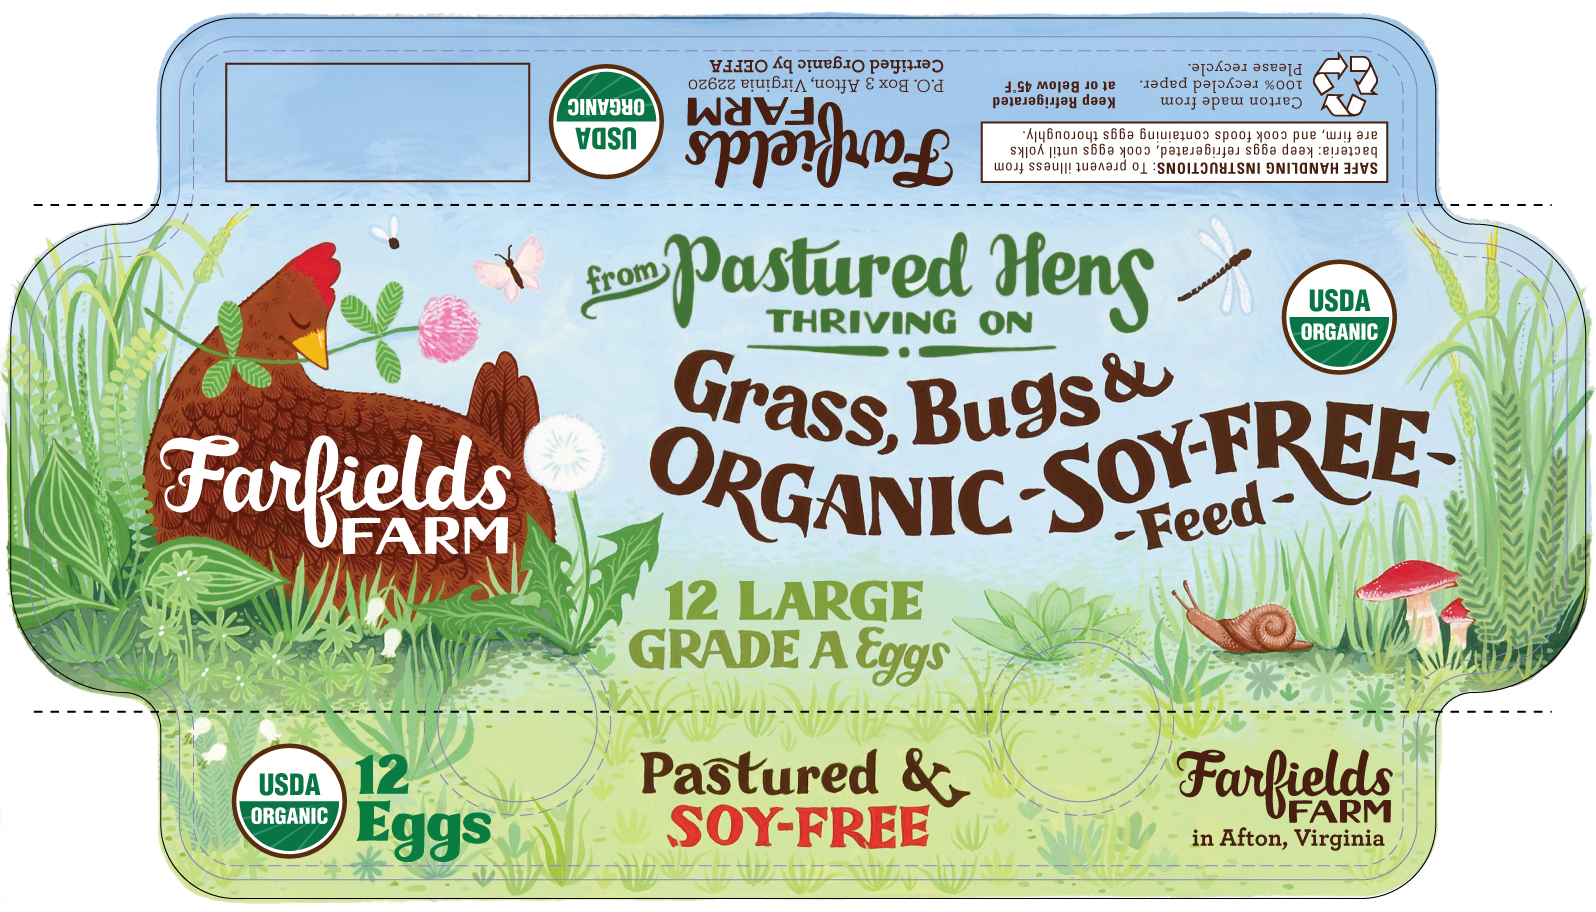 Farfields Farm Egg Carton